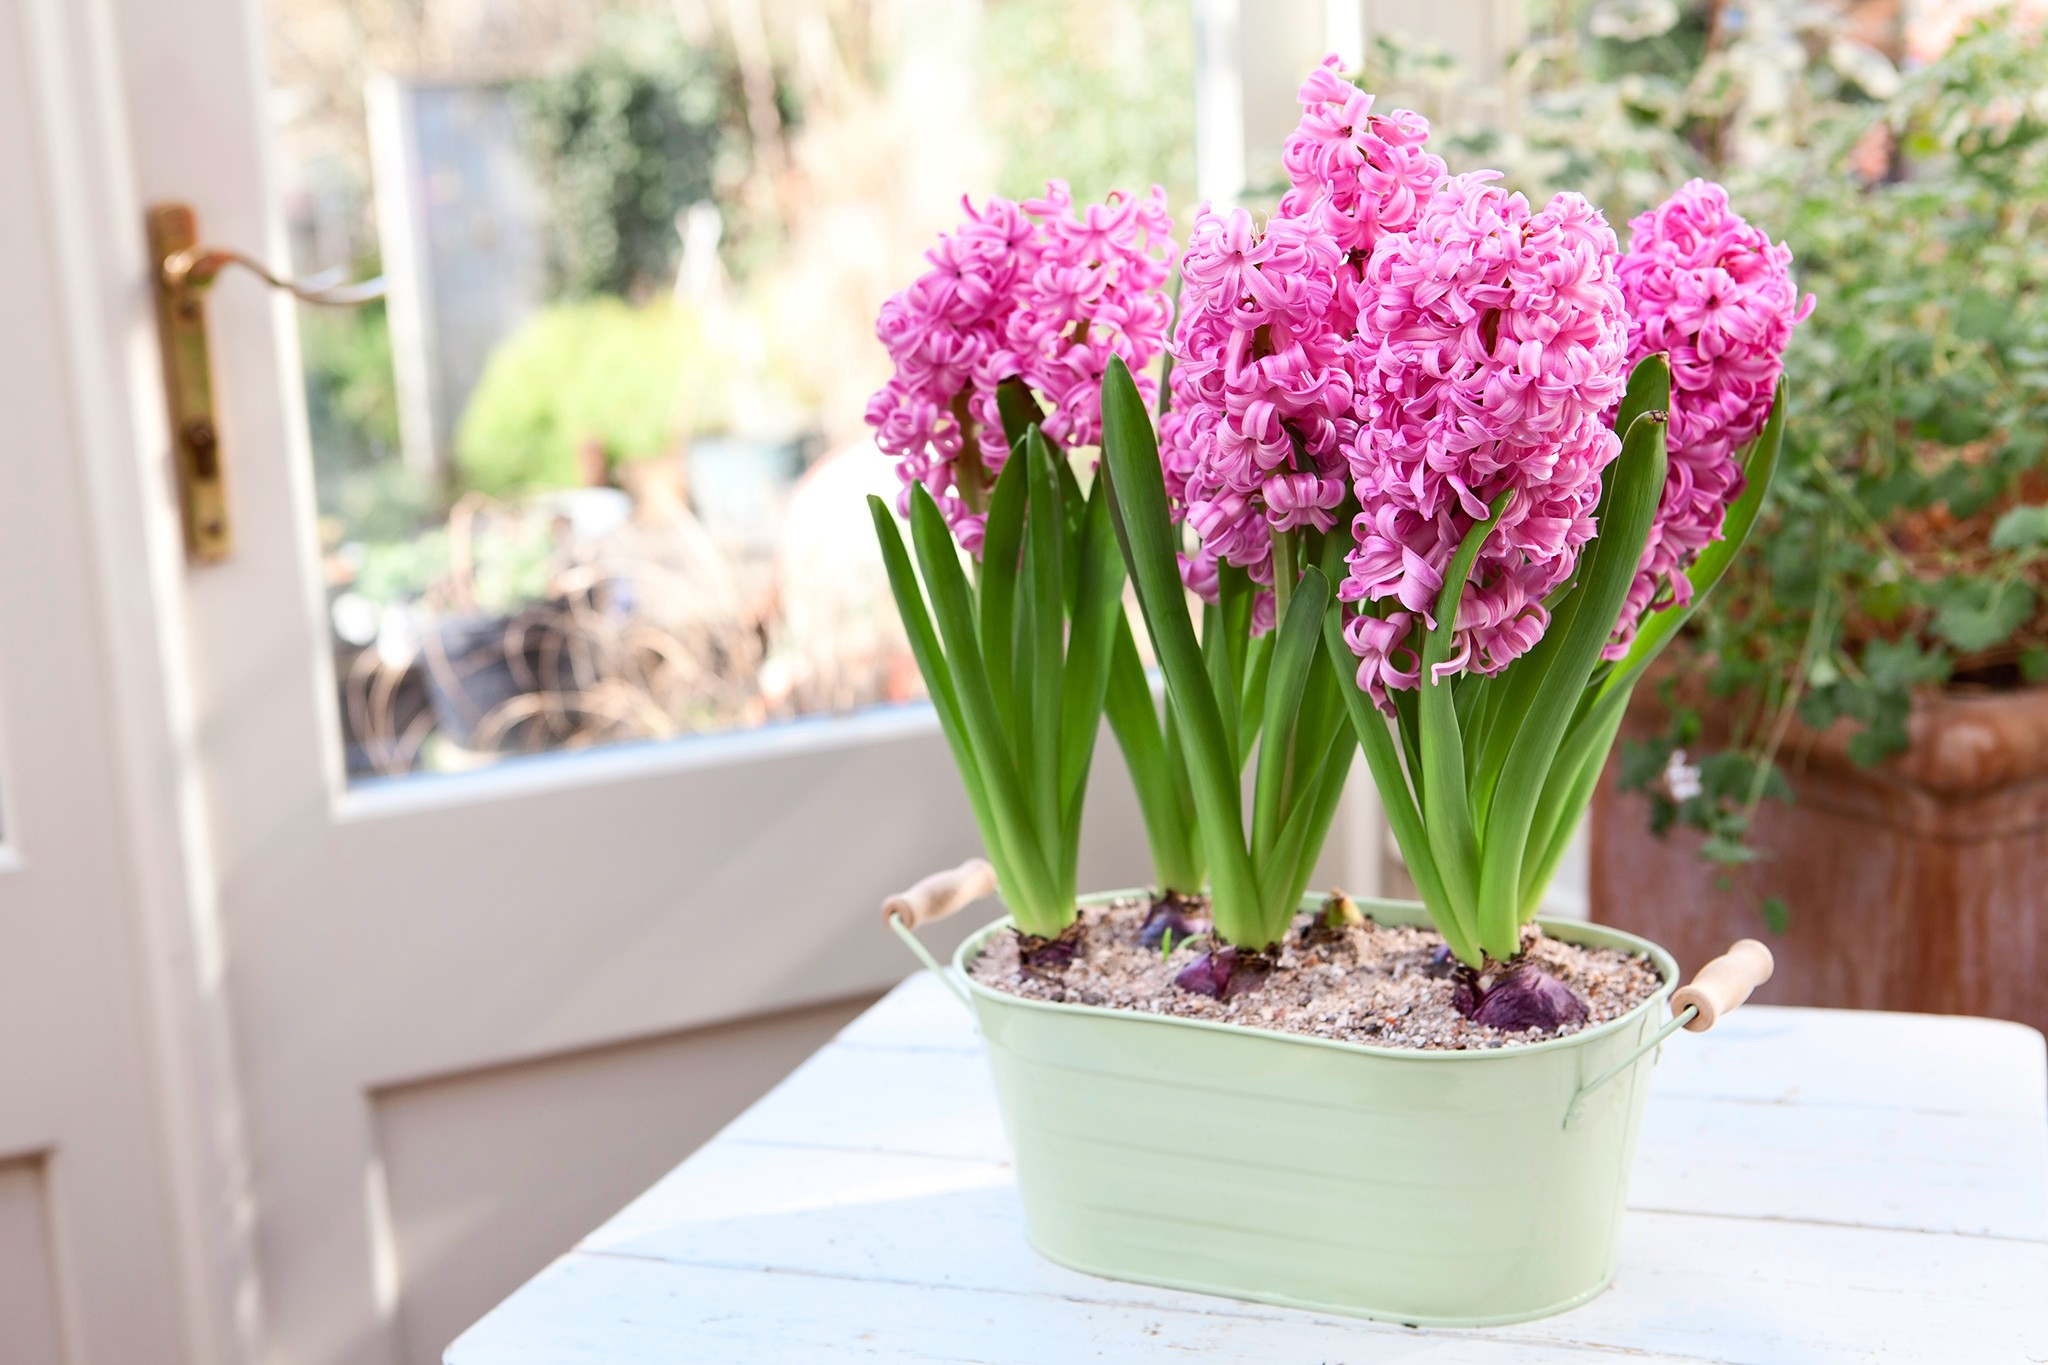 Pink hyacinths growing indoors